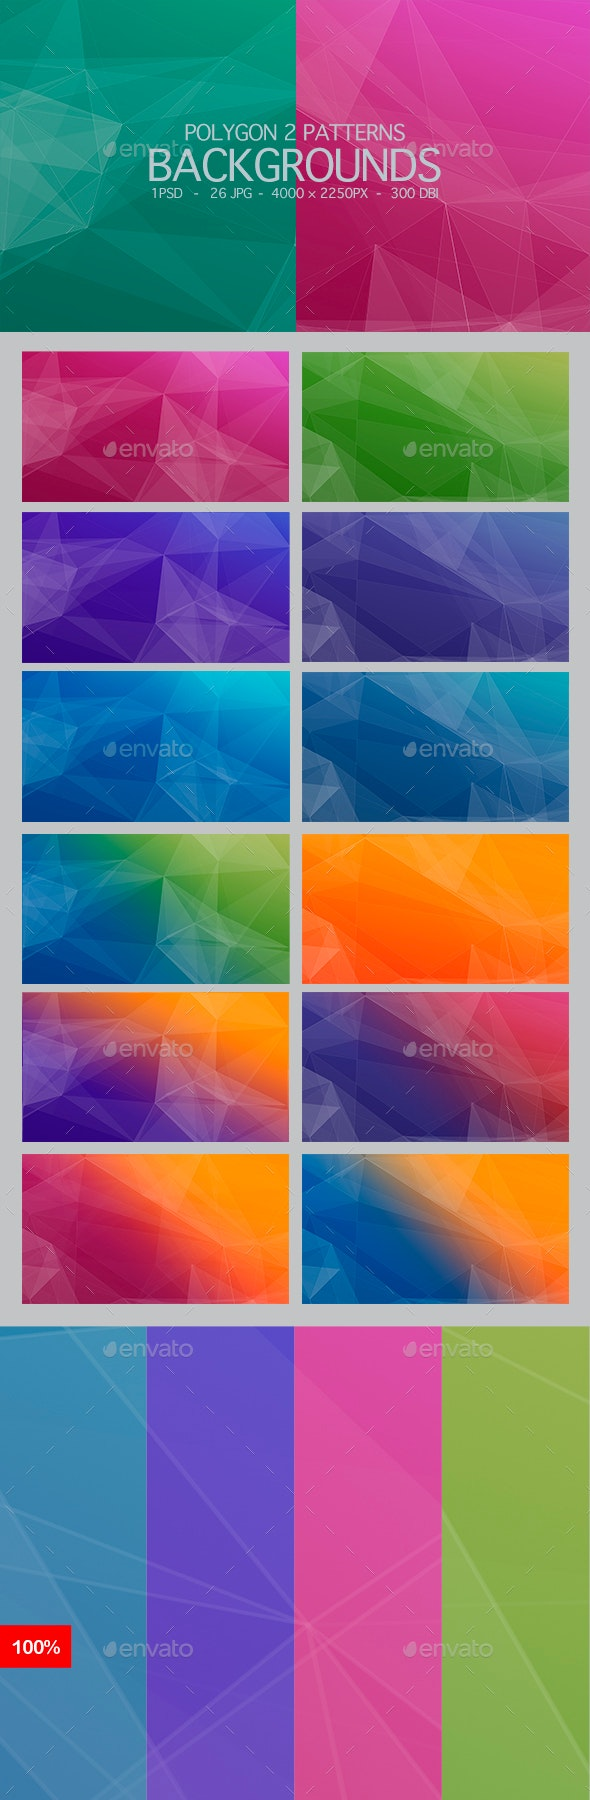 26 Polygons Backgrounds - Backgrounds Graphics